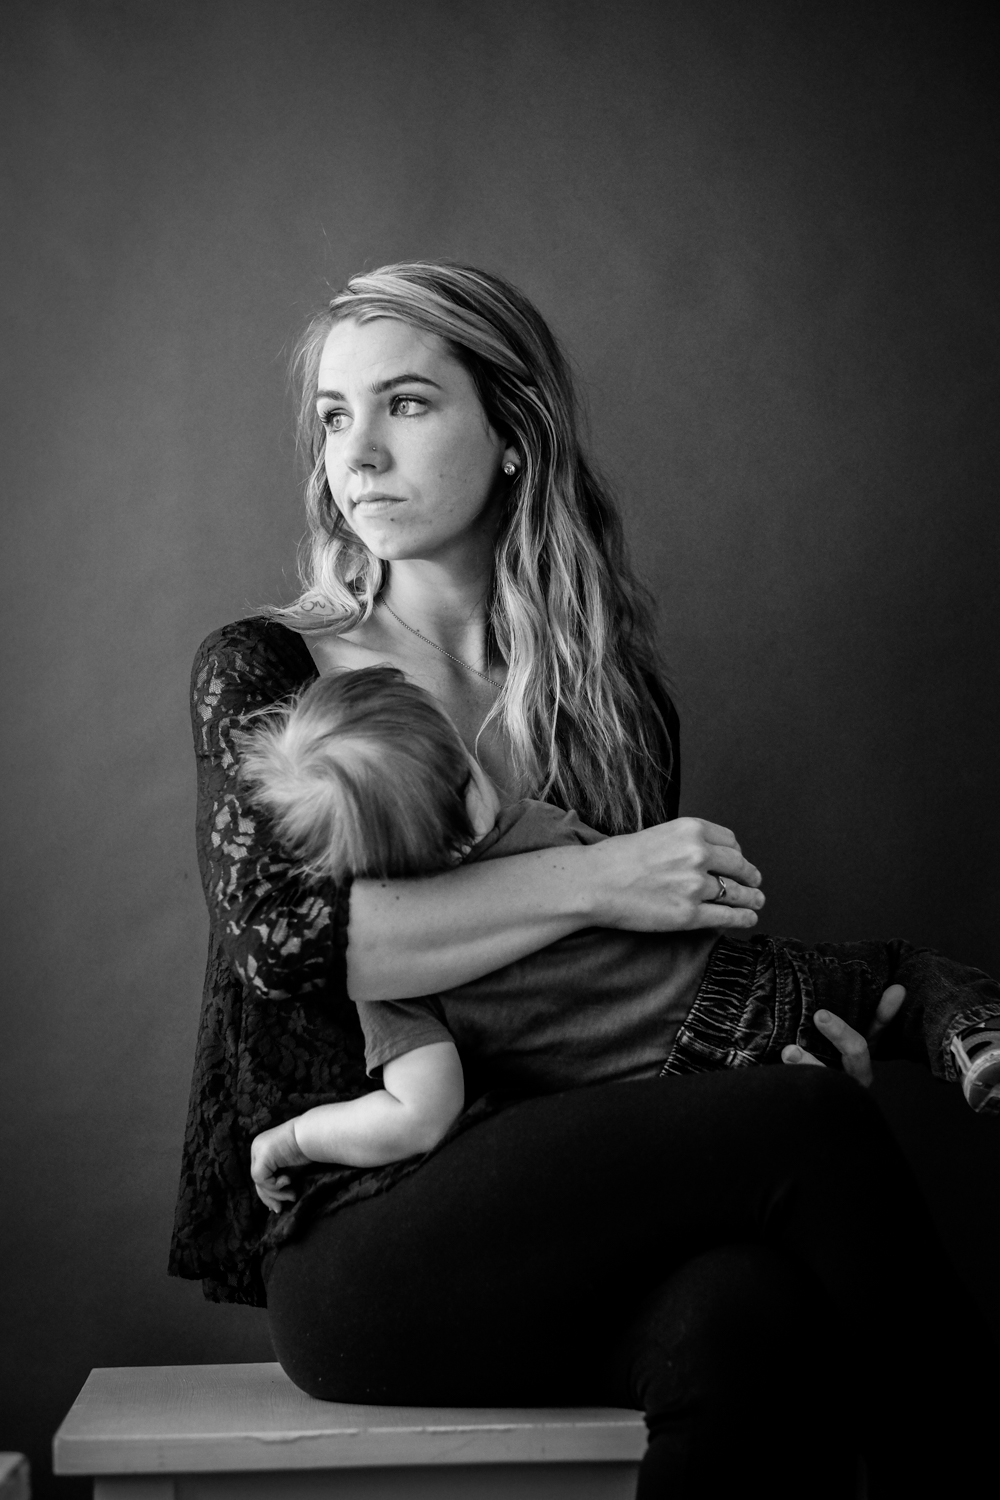 Portrait of a mom nursing her baby. 4 Tips for Helping People Feel Comfortable During Their Portrait Session